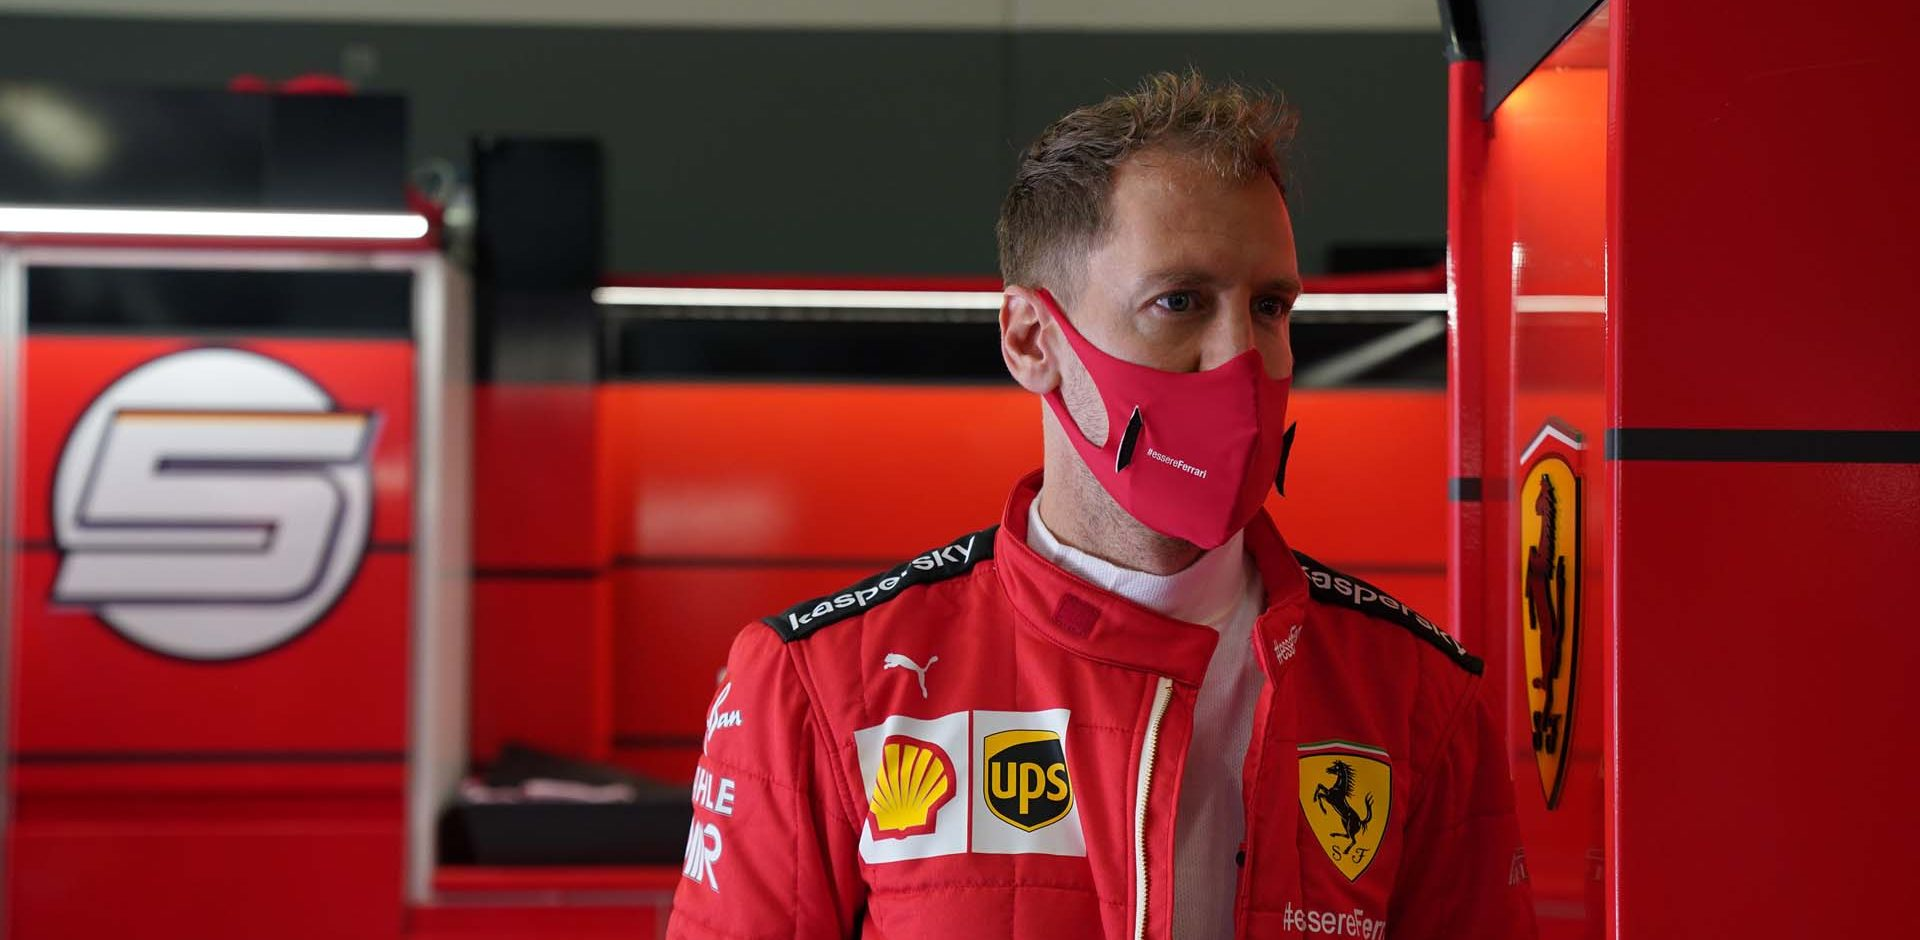 GP GERMANIA F1/2020 -  SABATO  10/10/2020   credit: @Scuderia Ferrari Press Office Sebastian Vettel Ferrari